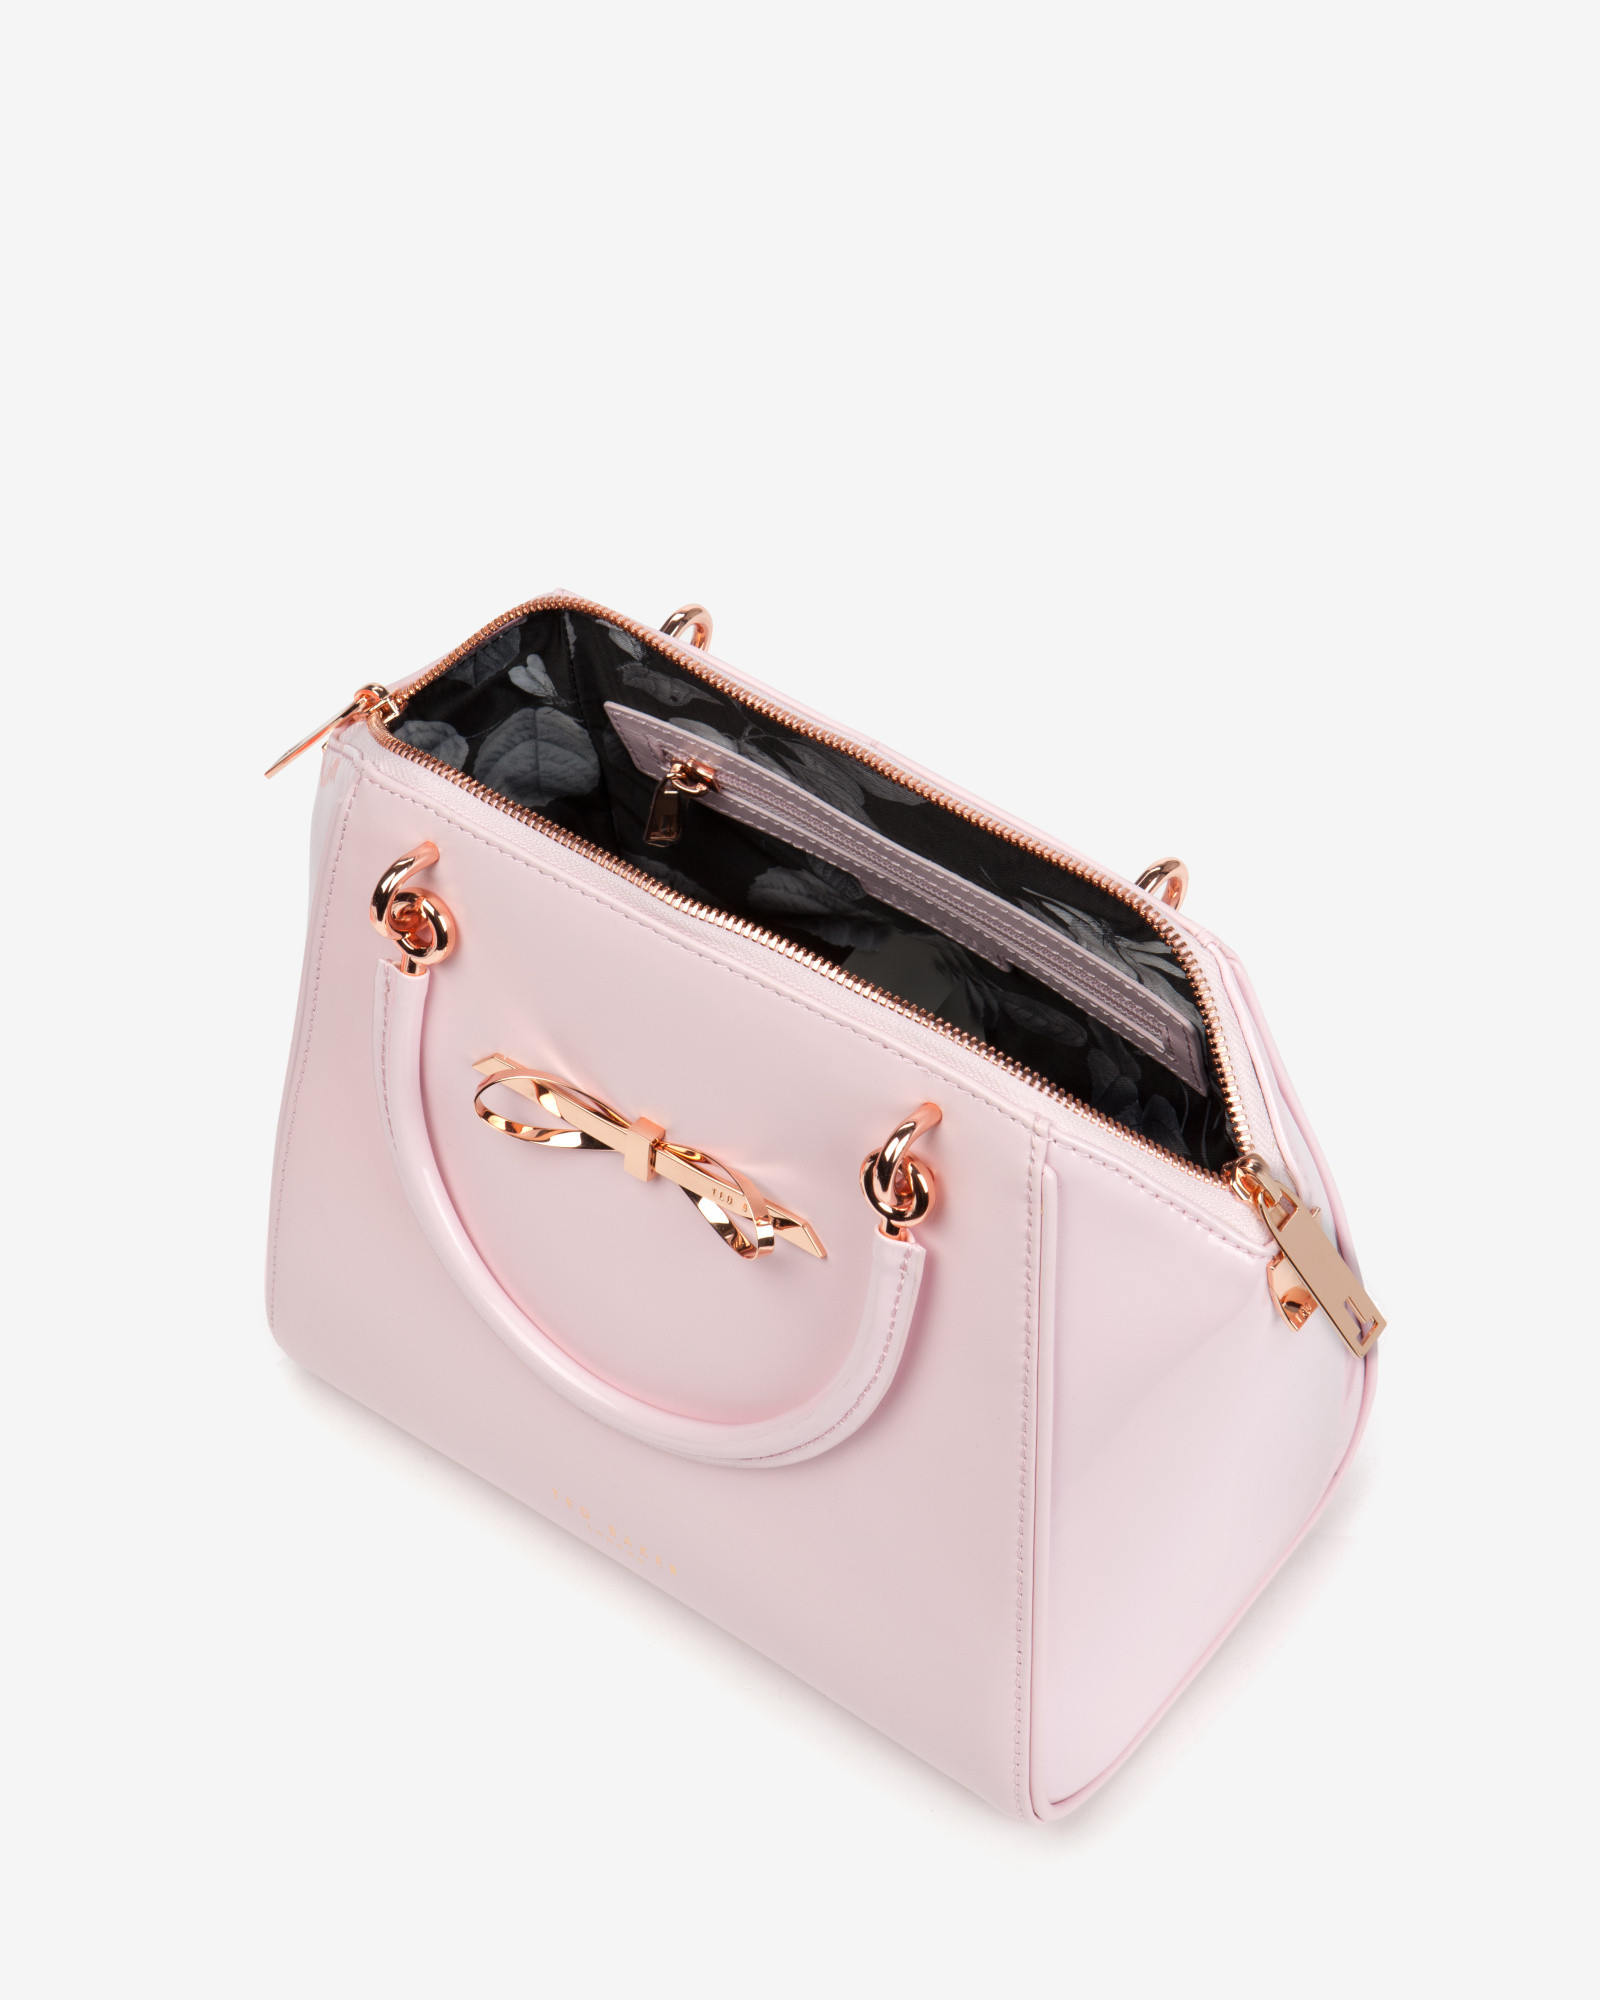 f97310318e4b77 Lyst - Ted Baker Small Slim Bow Tote Bag in Pink